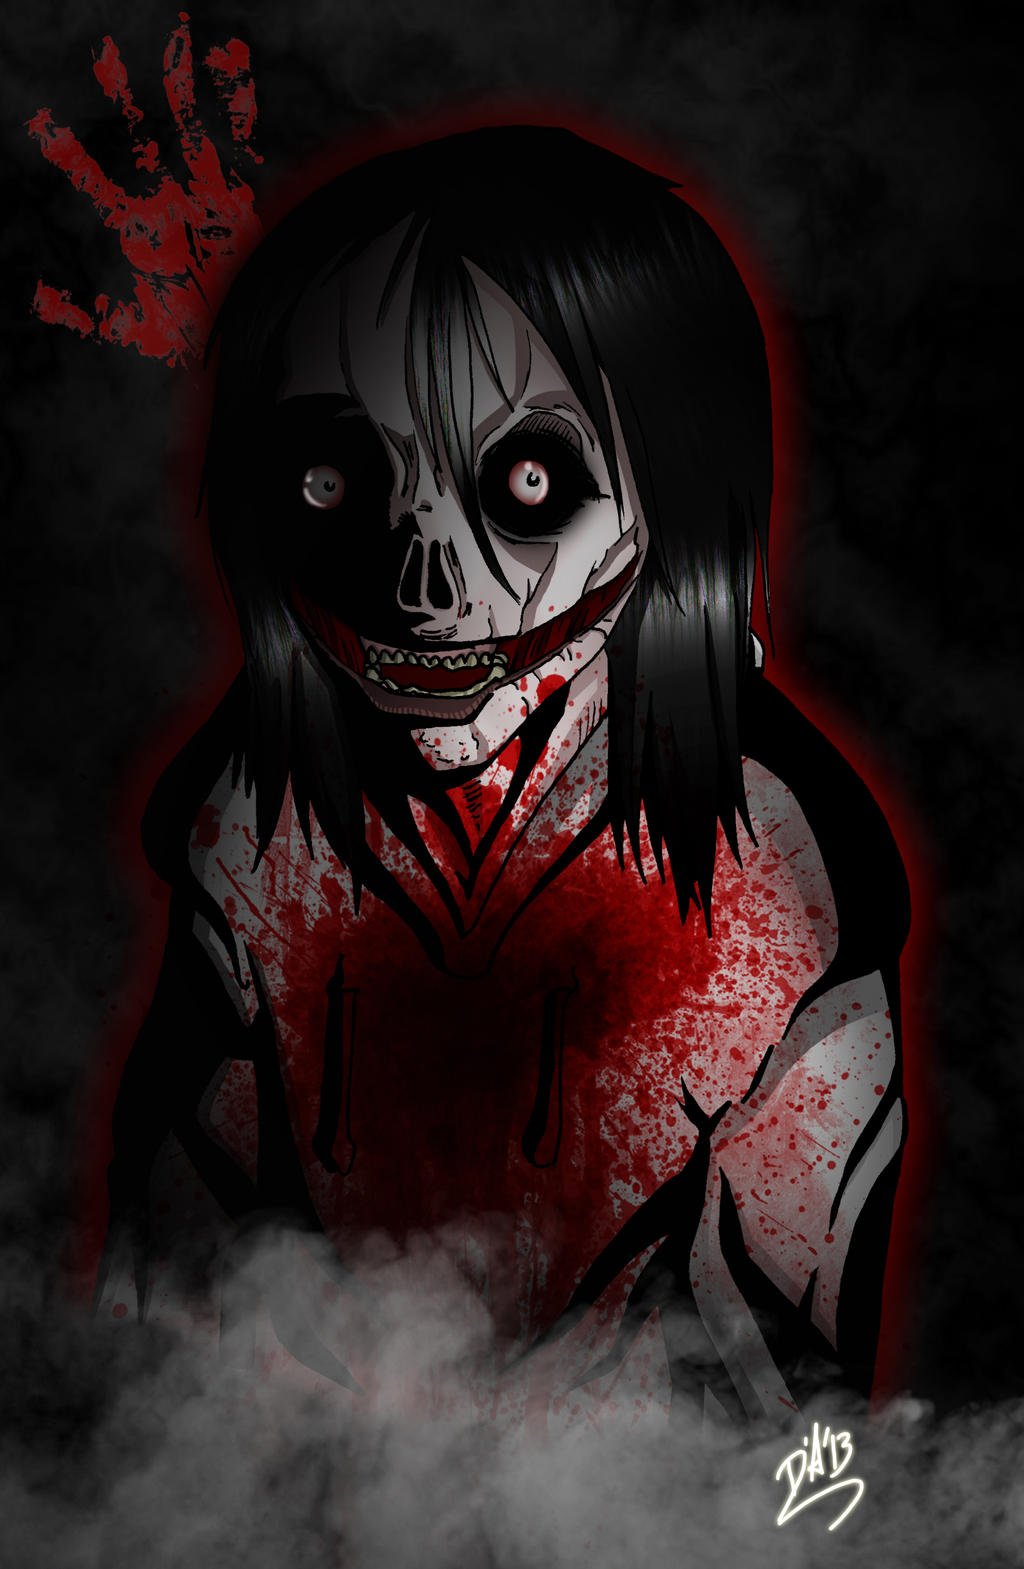 jeff the killer publish with glogster